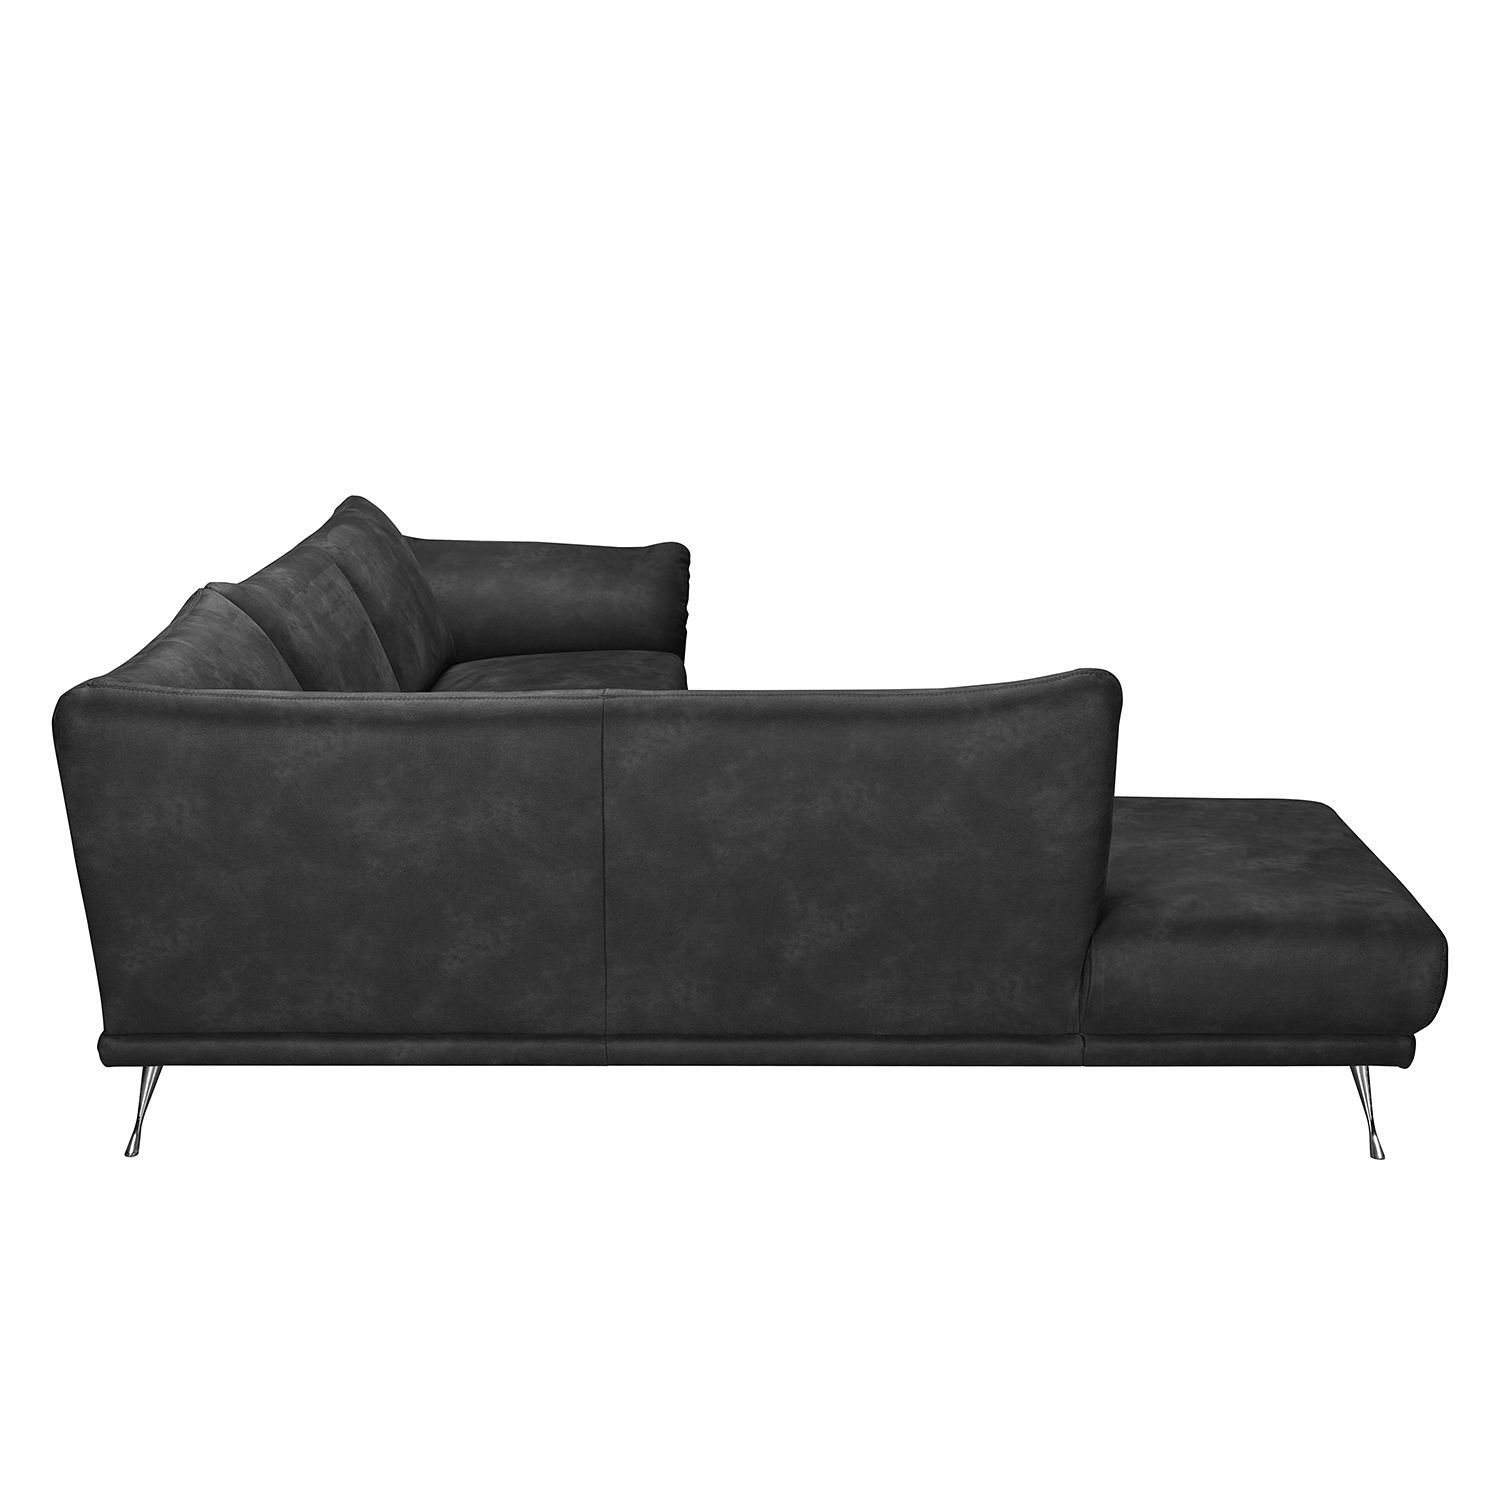 Ecksofa Nola Ecksofa Milan In 2018 Products Pinterest